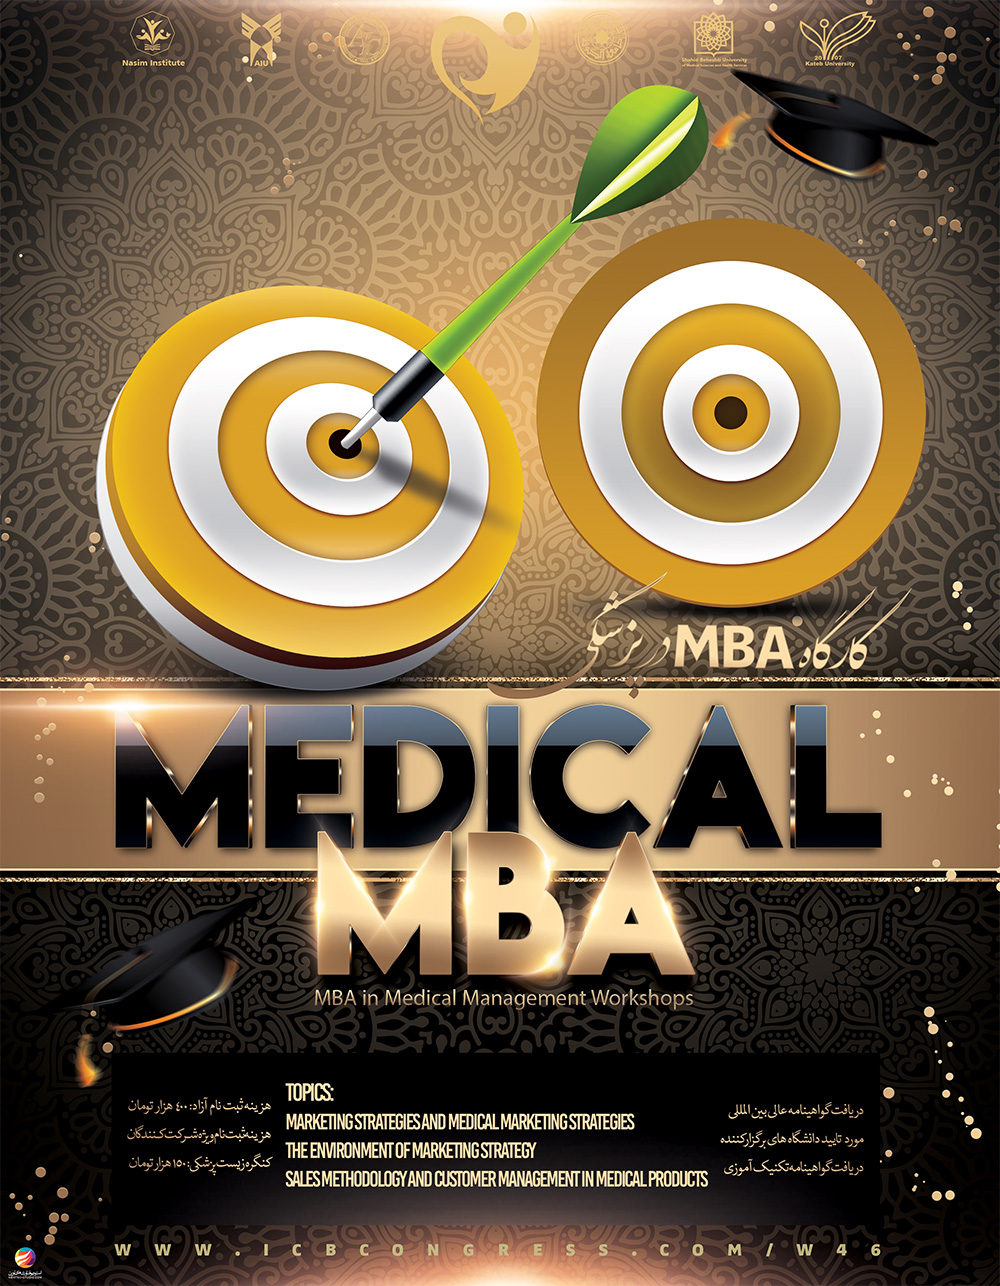 MBA in Medical Management Workshops